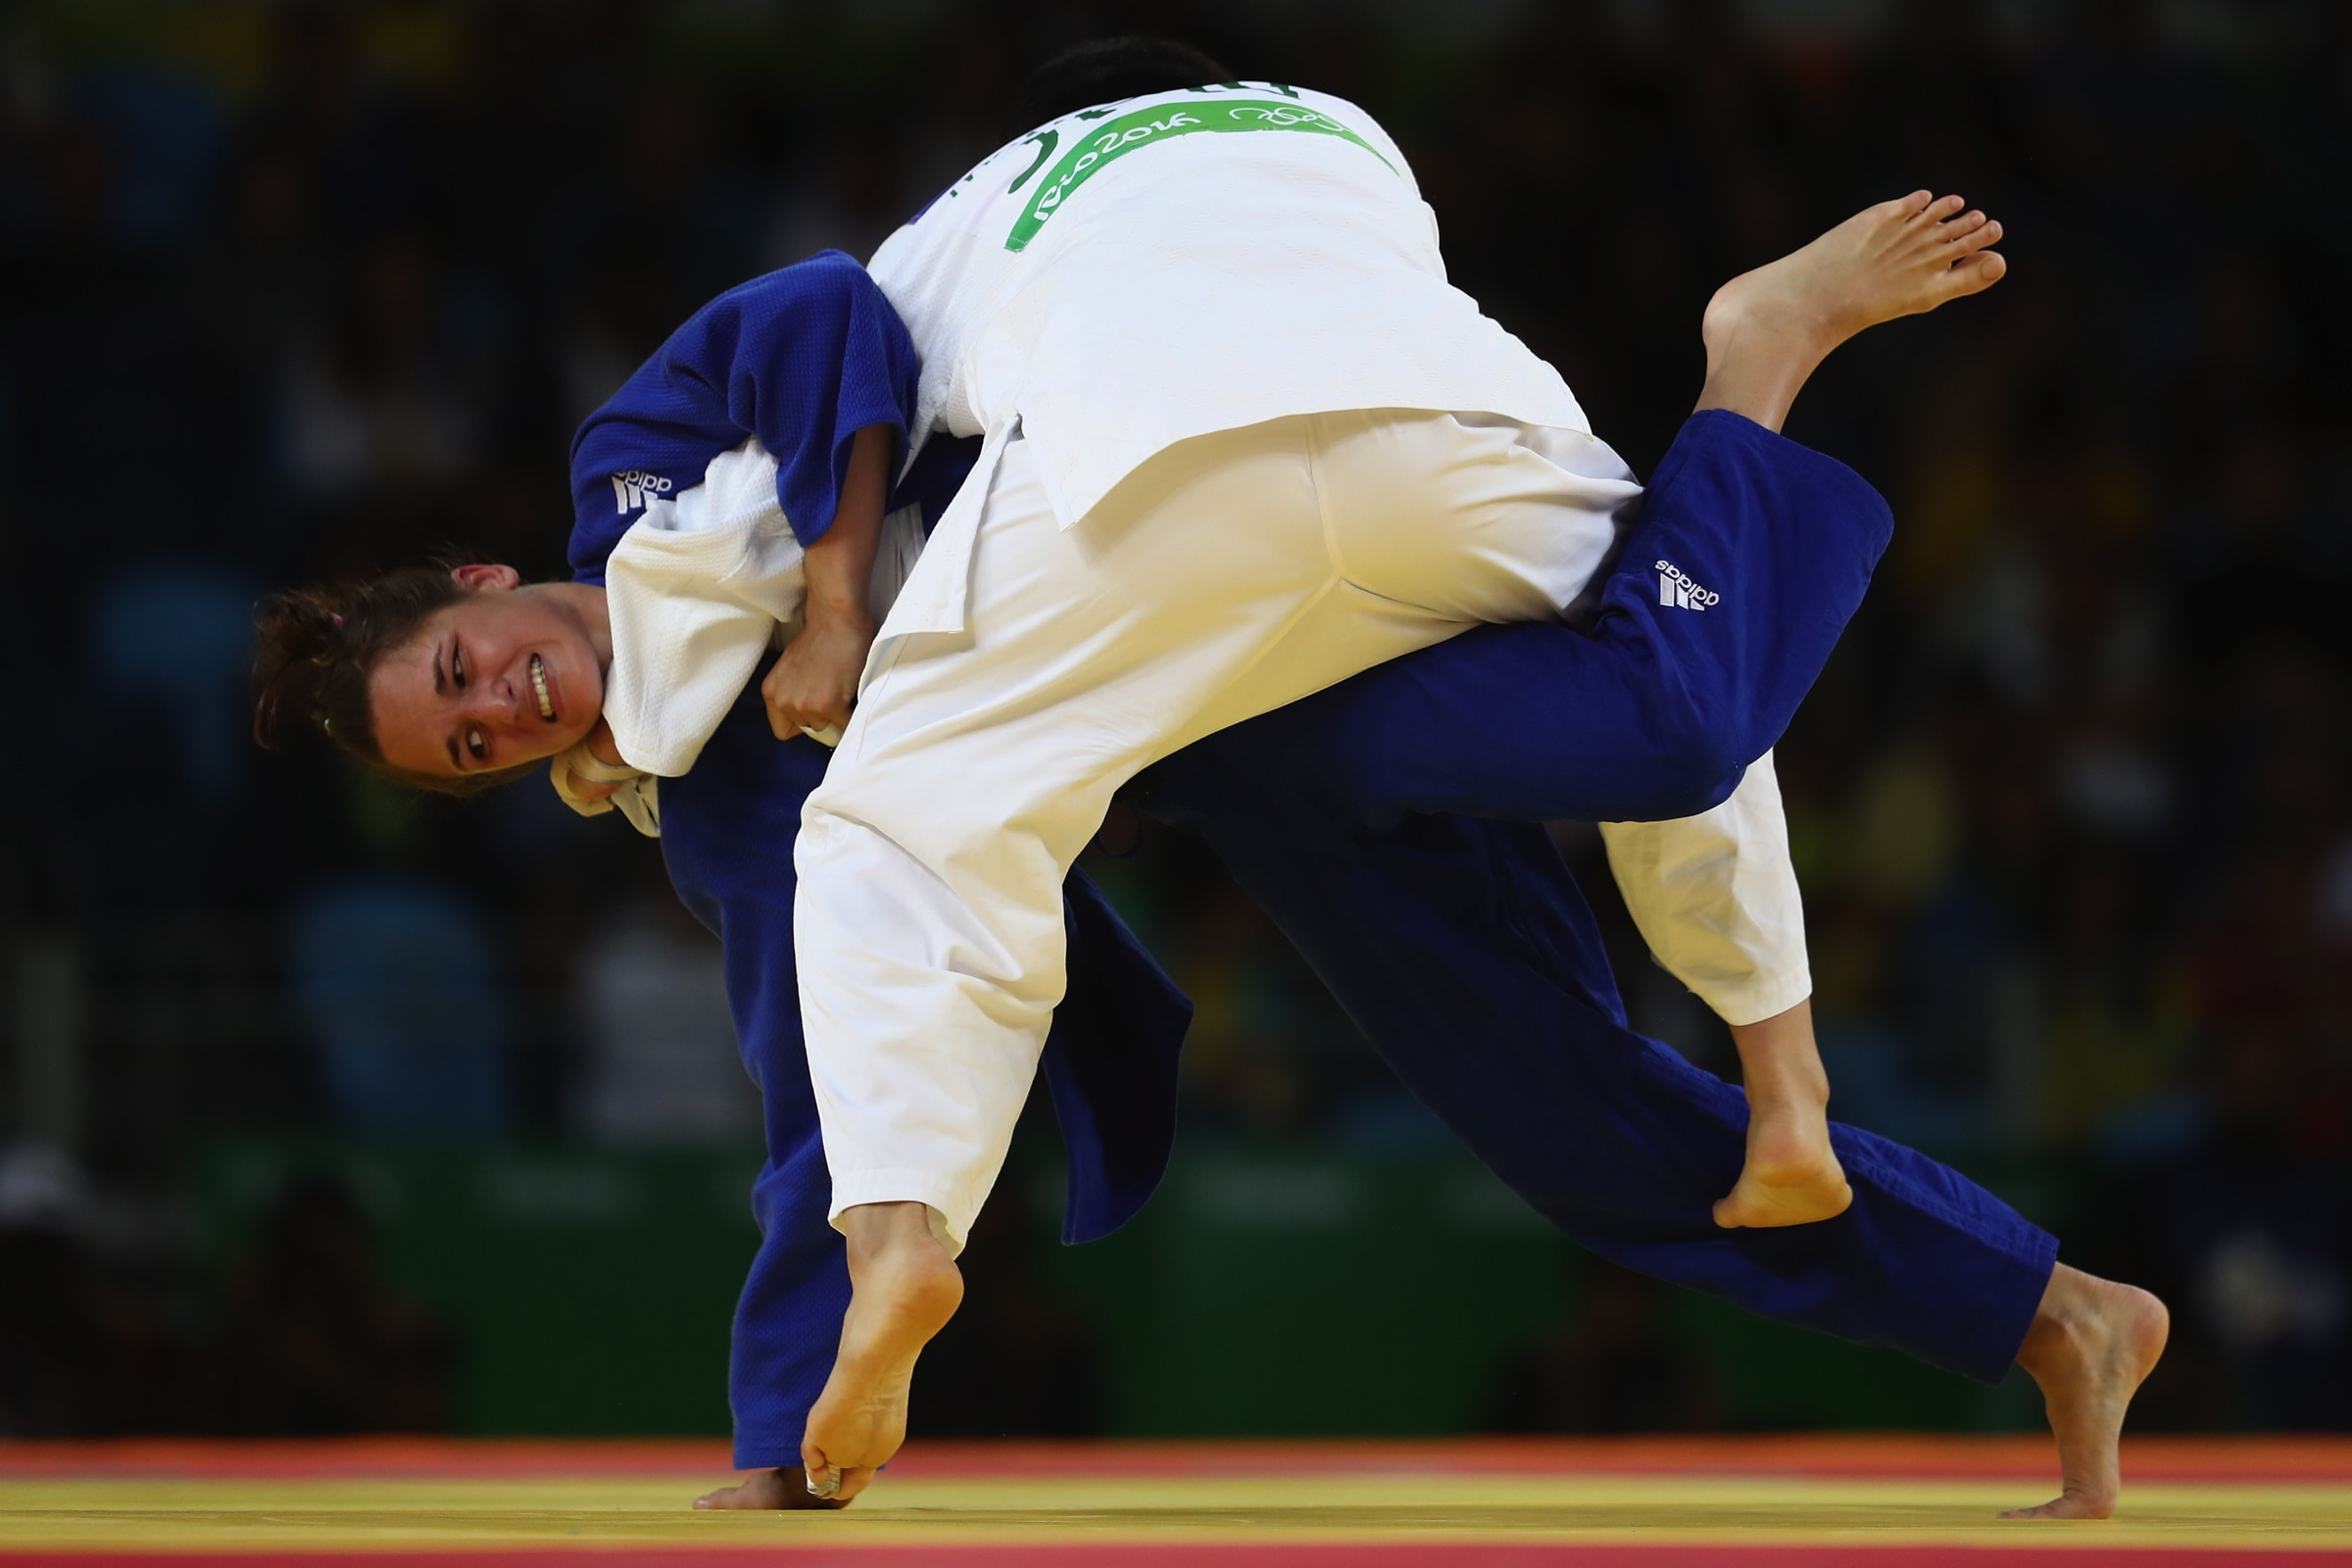 Judo - 70 - 78kg (half-heavyweight) Women